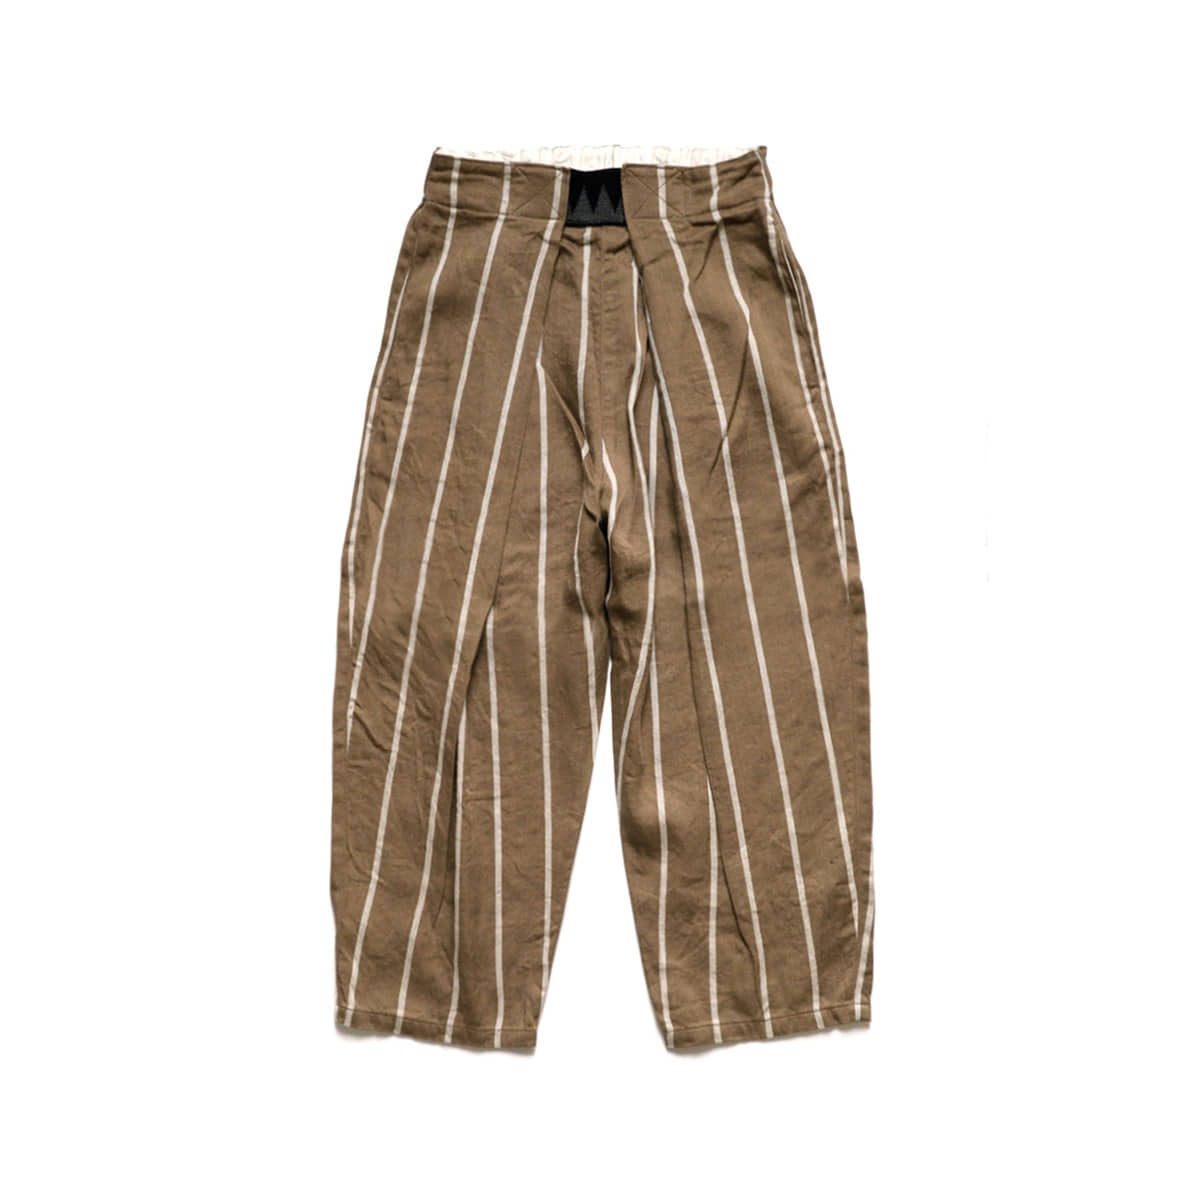 [KAPITAL] LINEN PHILLIES STRIPE EASY-BEACH-GO PANTS 'BROWN'